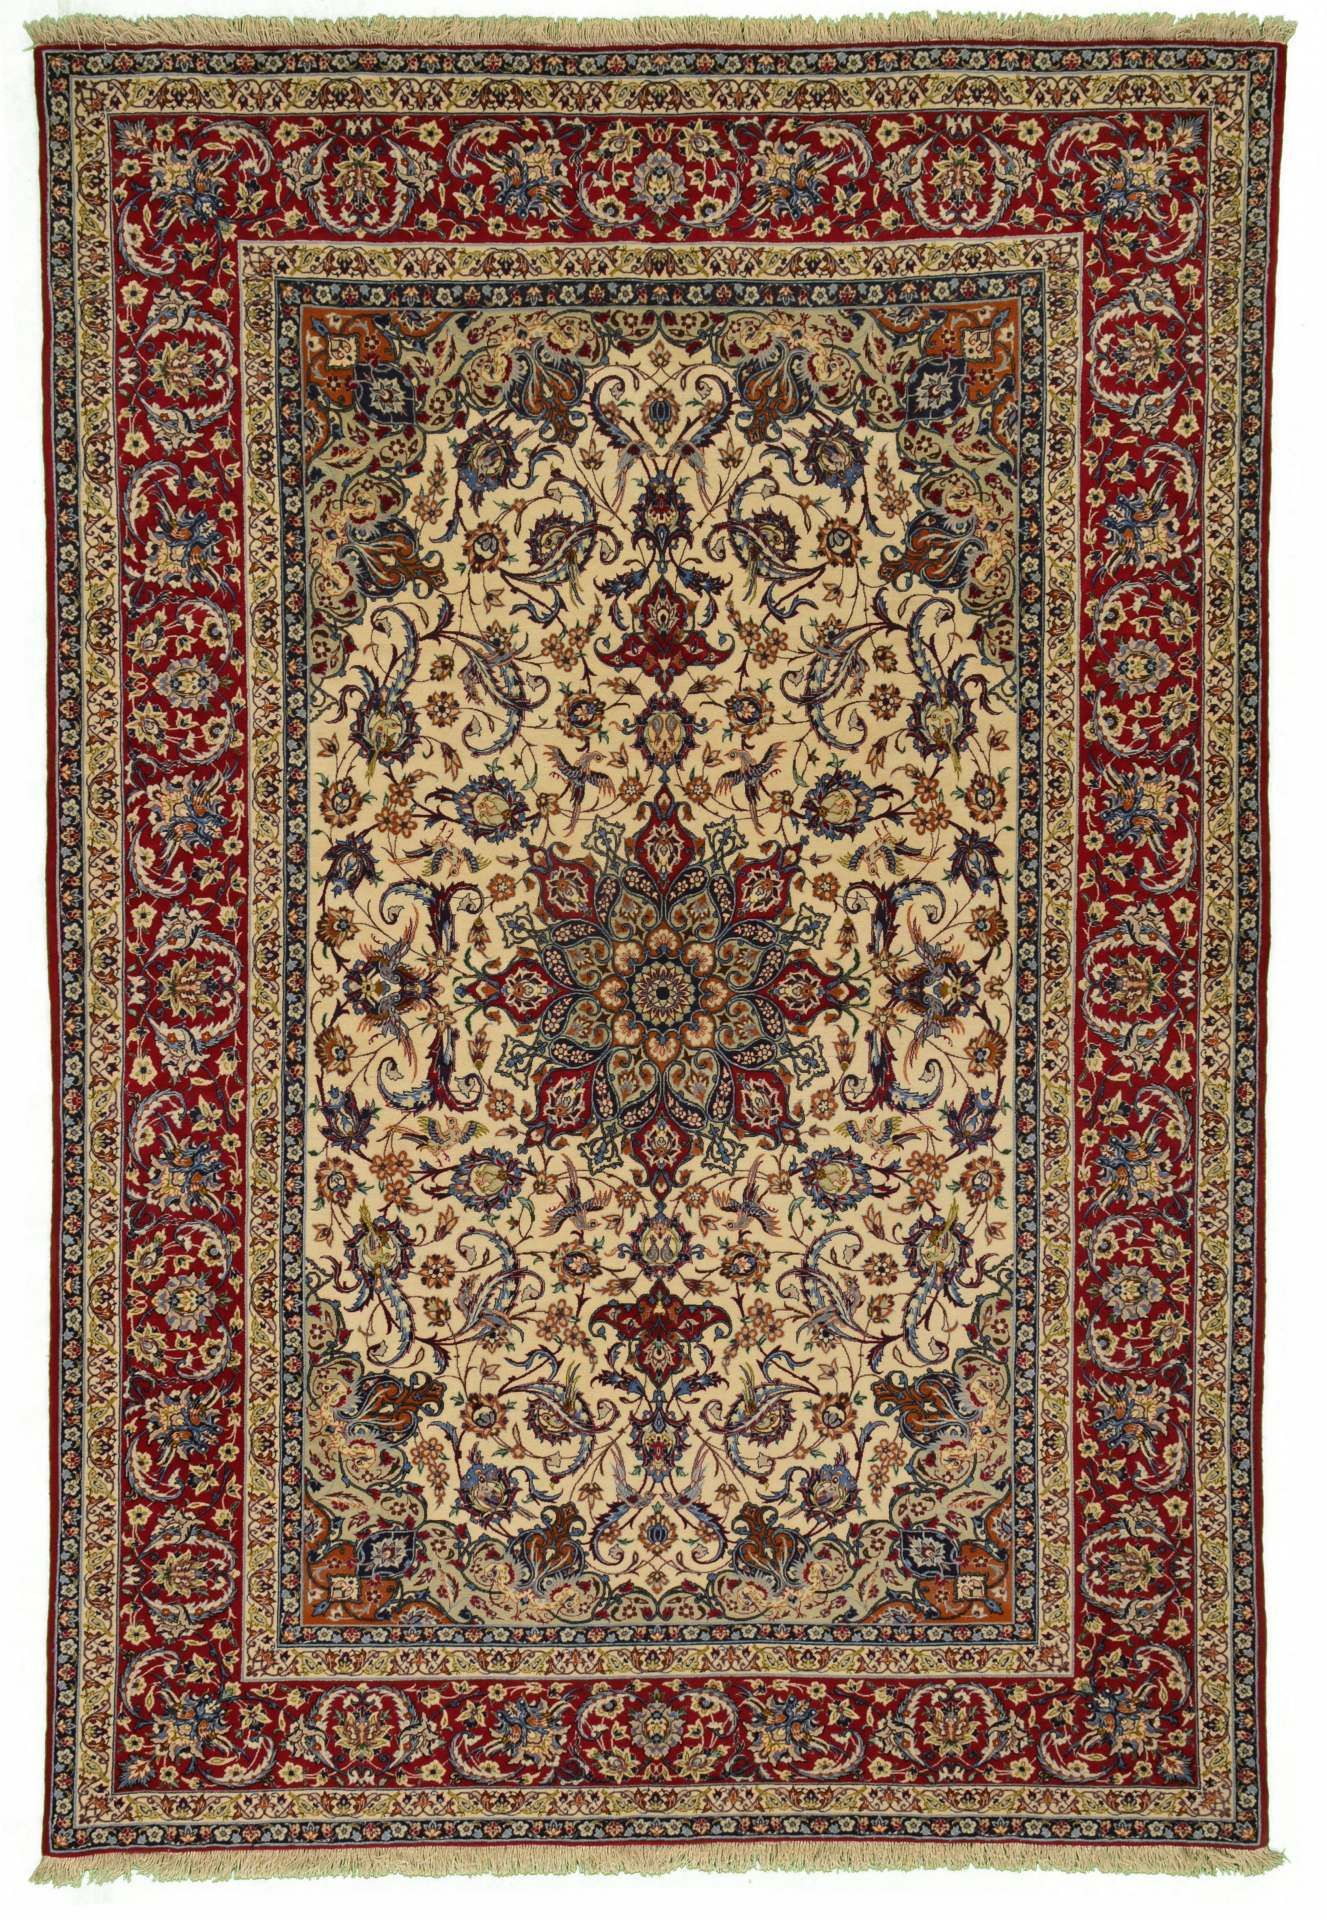 Pin On Antique Carpet Rug Kilim Persian Myo